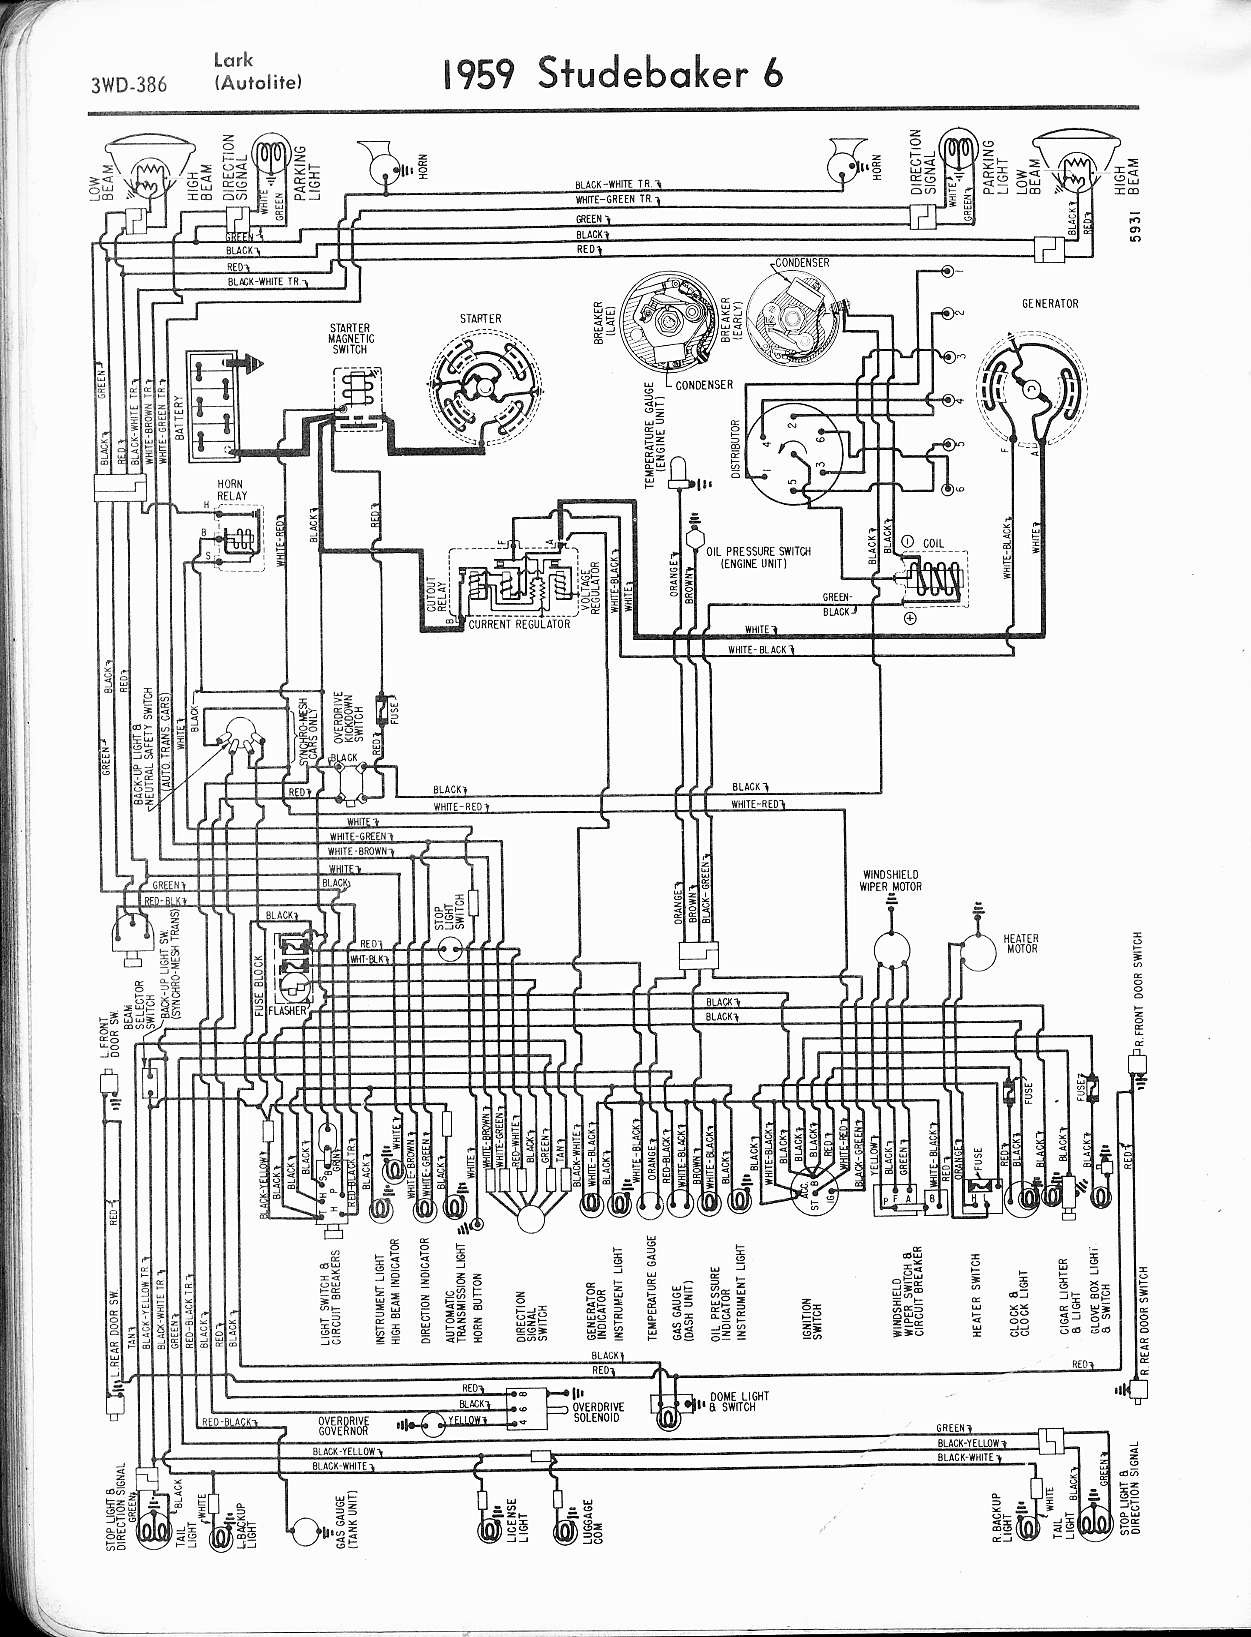 Car Electrical System Diagram Studebaker Technical Help Studebakerparts Of Car Electrical System Diagram Diesel Generator Control Panel Wiring Diagram